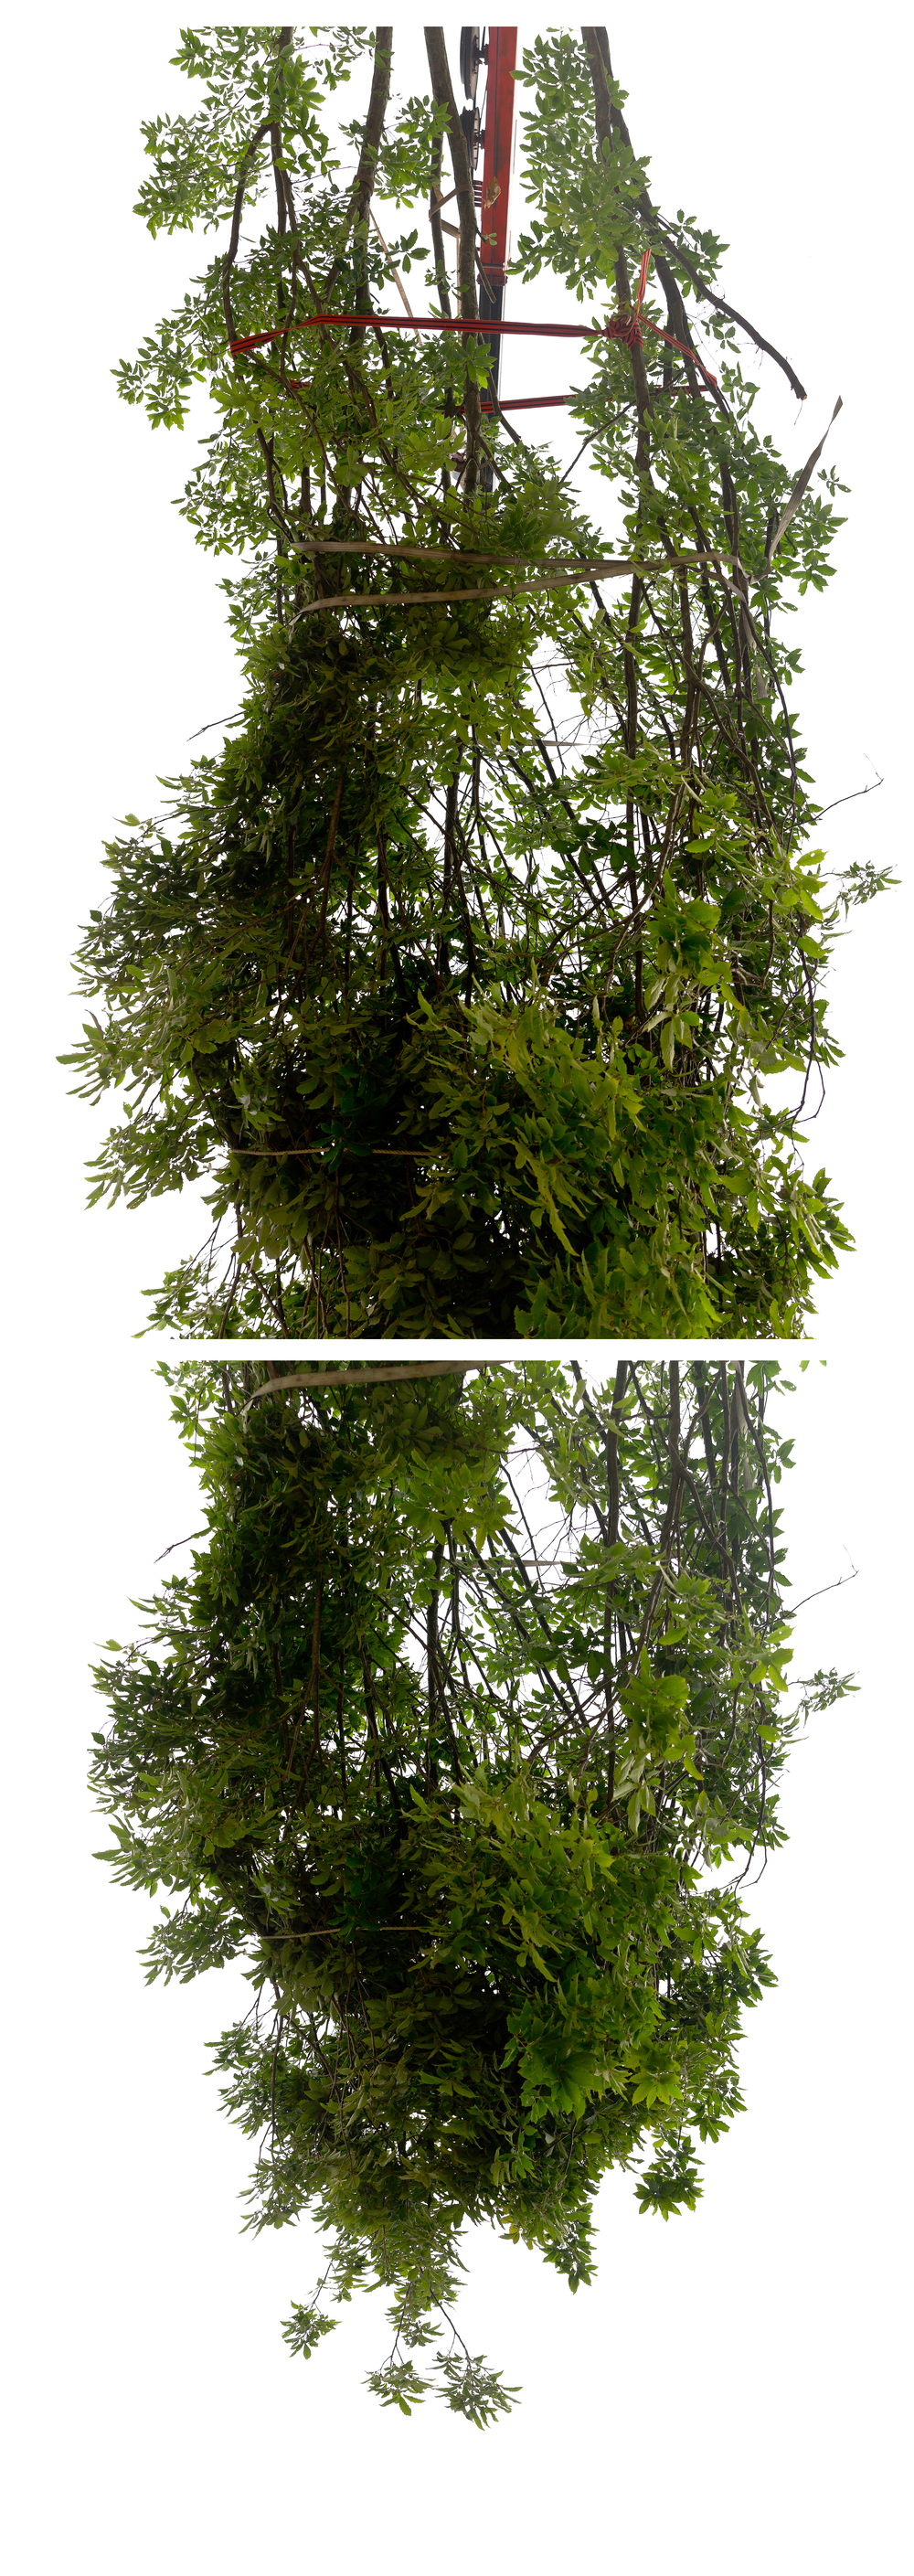 Suspended / Bound Tree   Diptych, 2 photographic prints, 44 x 60 inches each (152.5 x 111.75 cm), 2016. © Andrew Wright